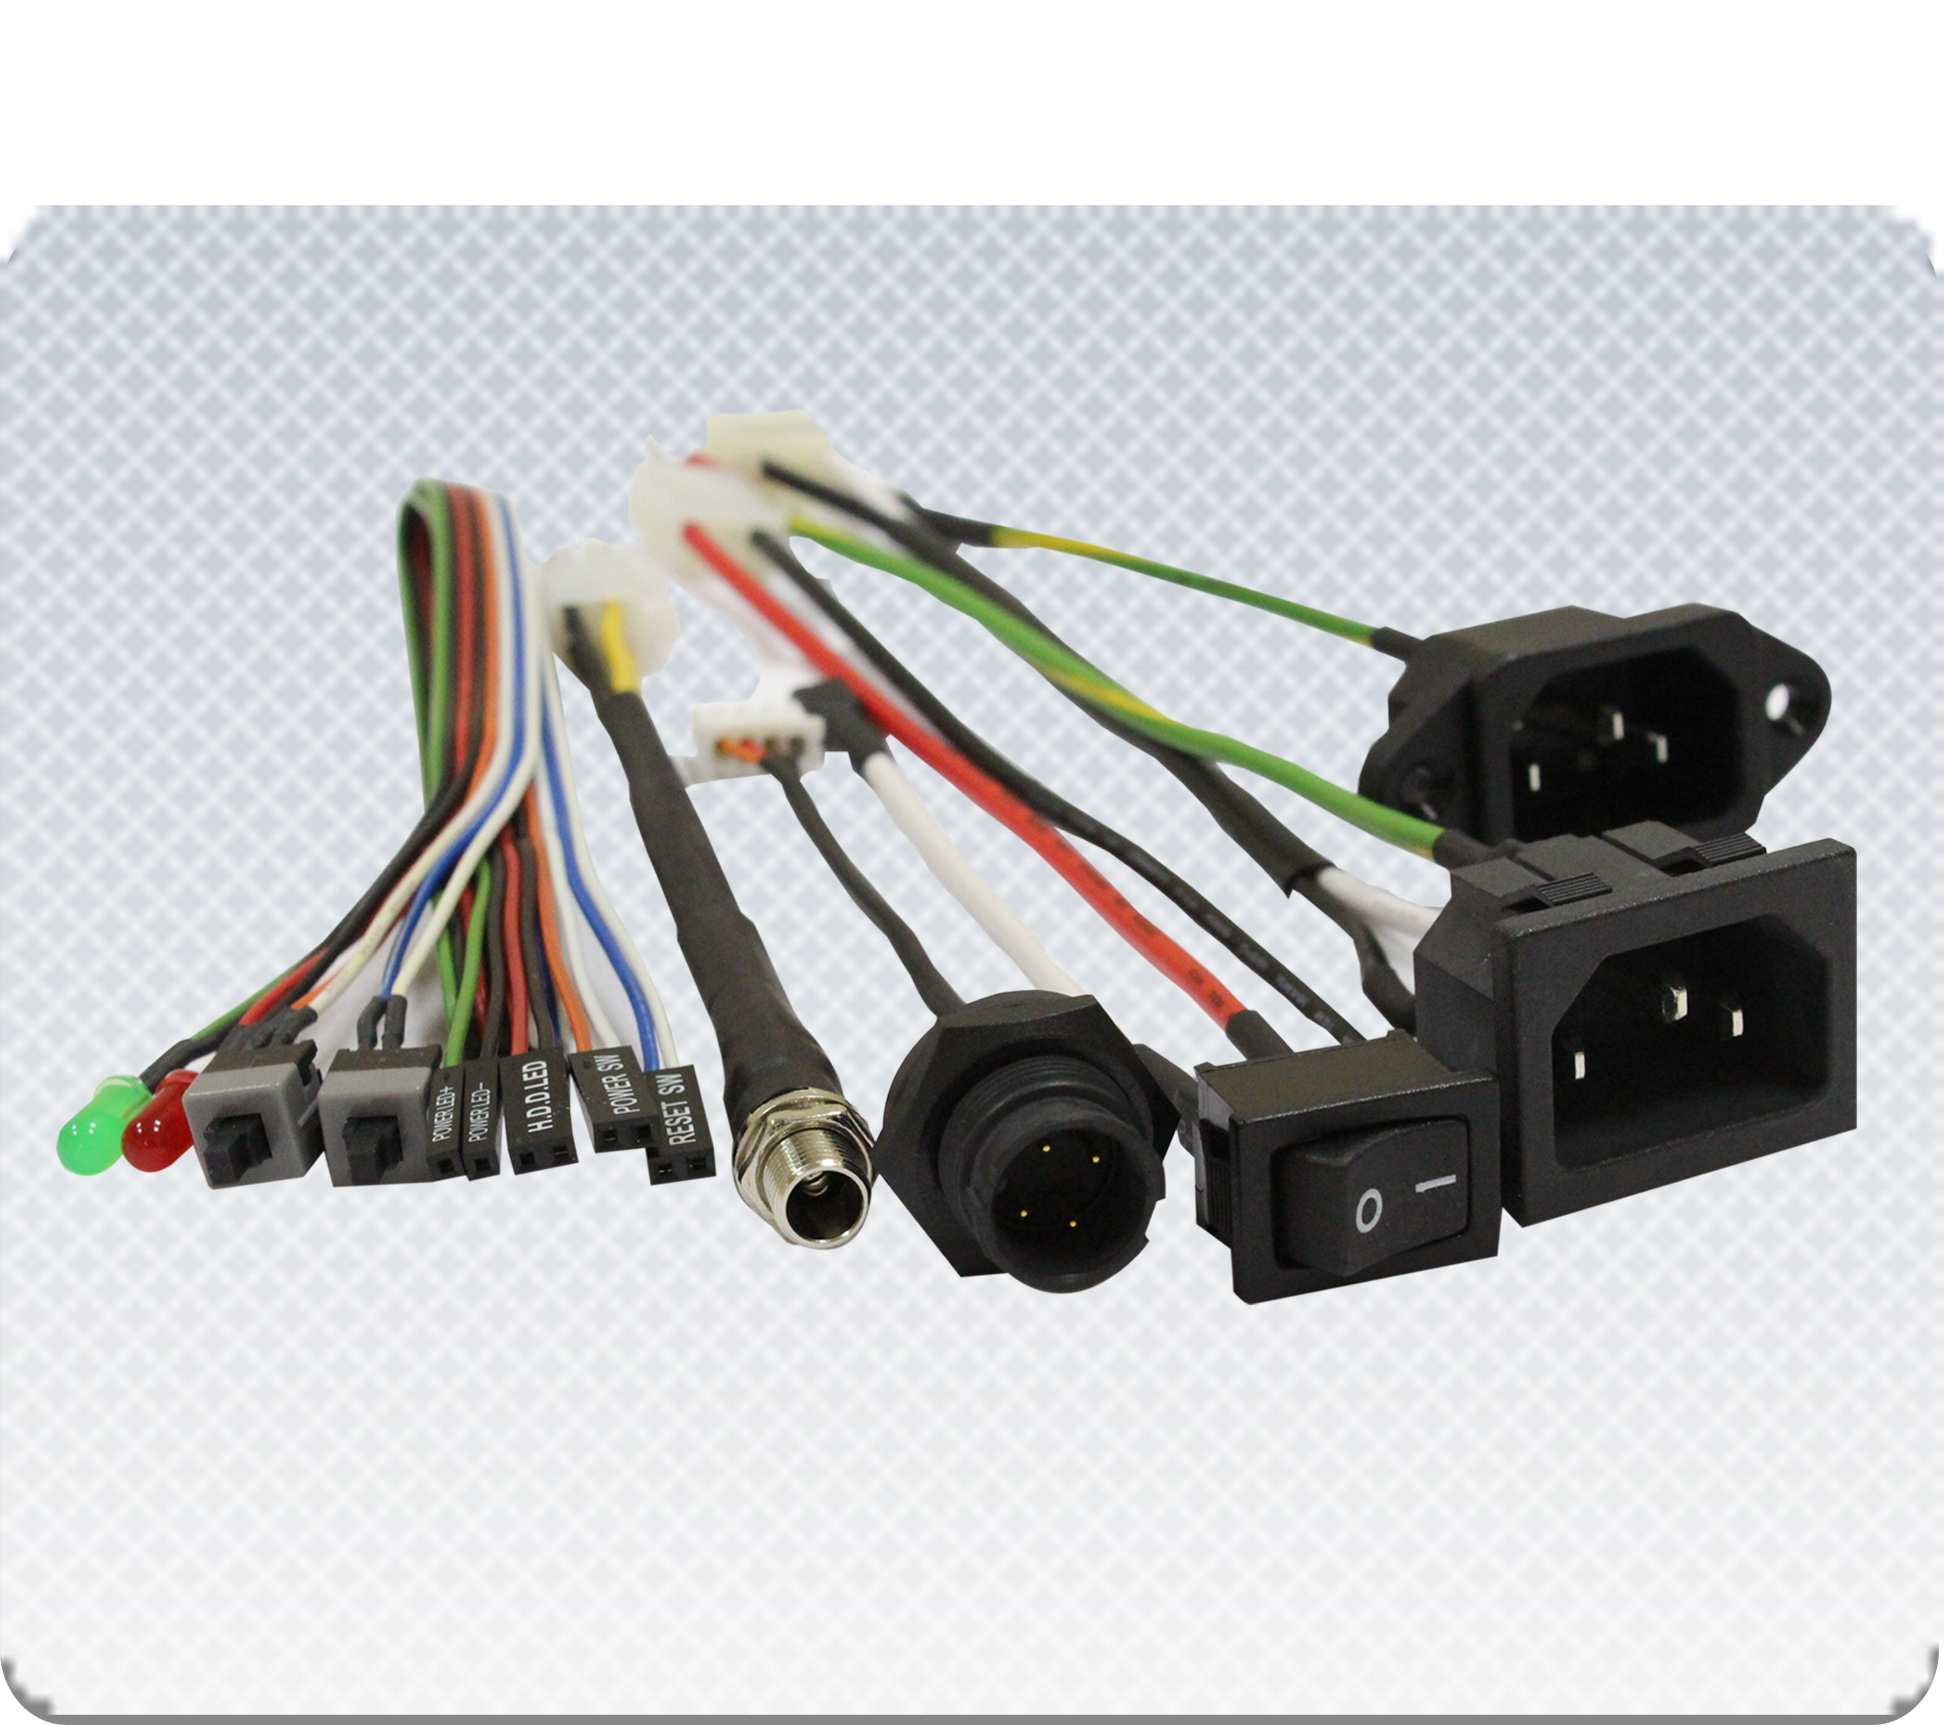 Wiring Harness(1)(3) molded cable, molded cable manufacturer & supplier molded wire harness at mifinder.co